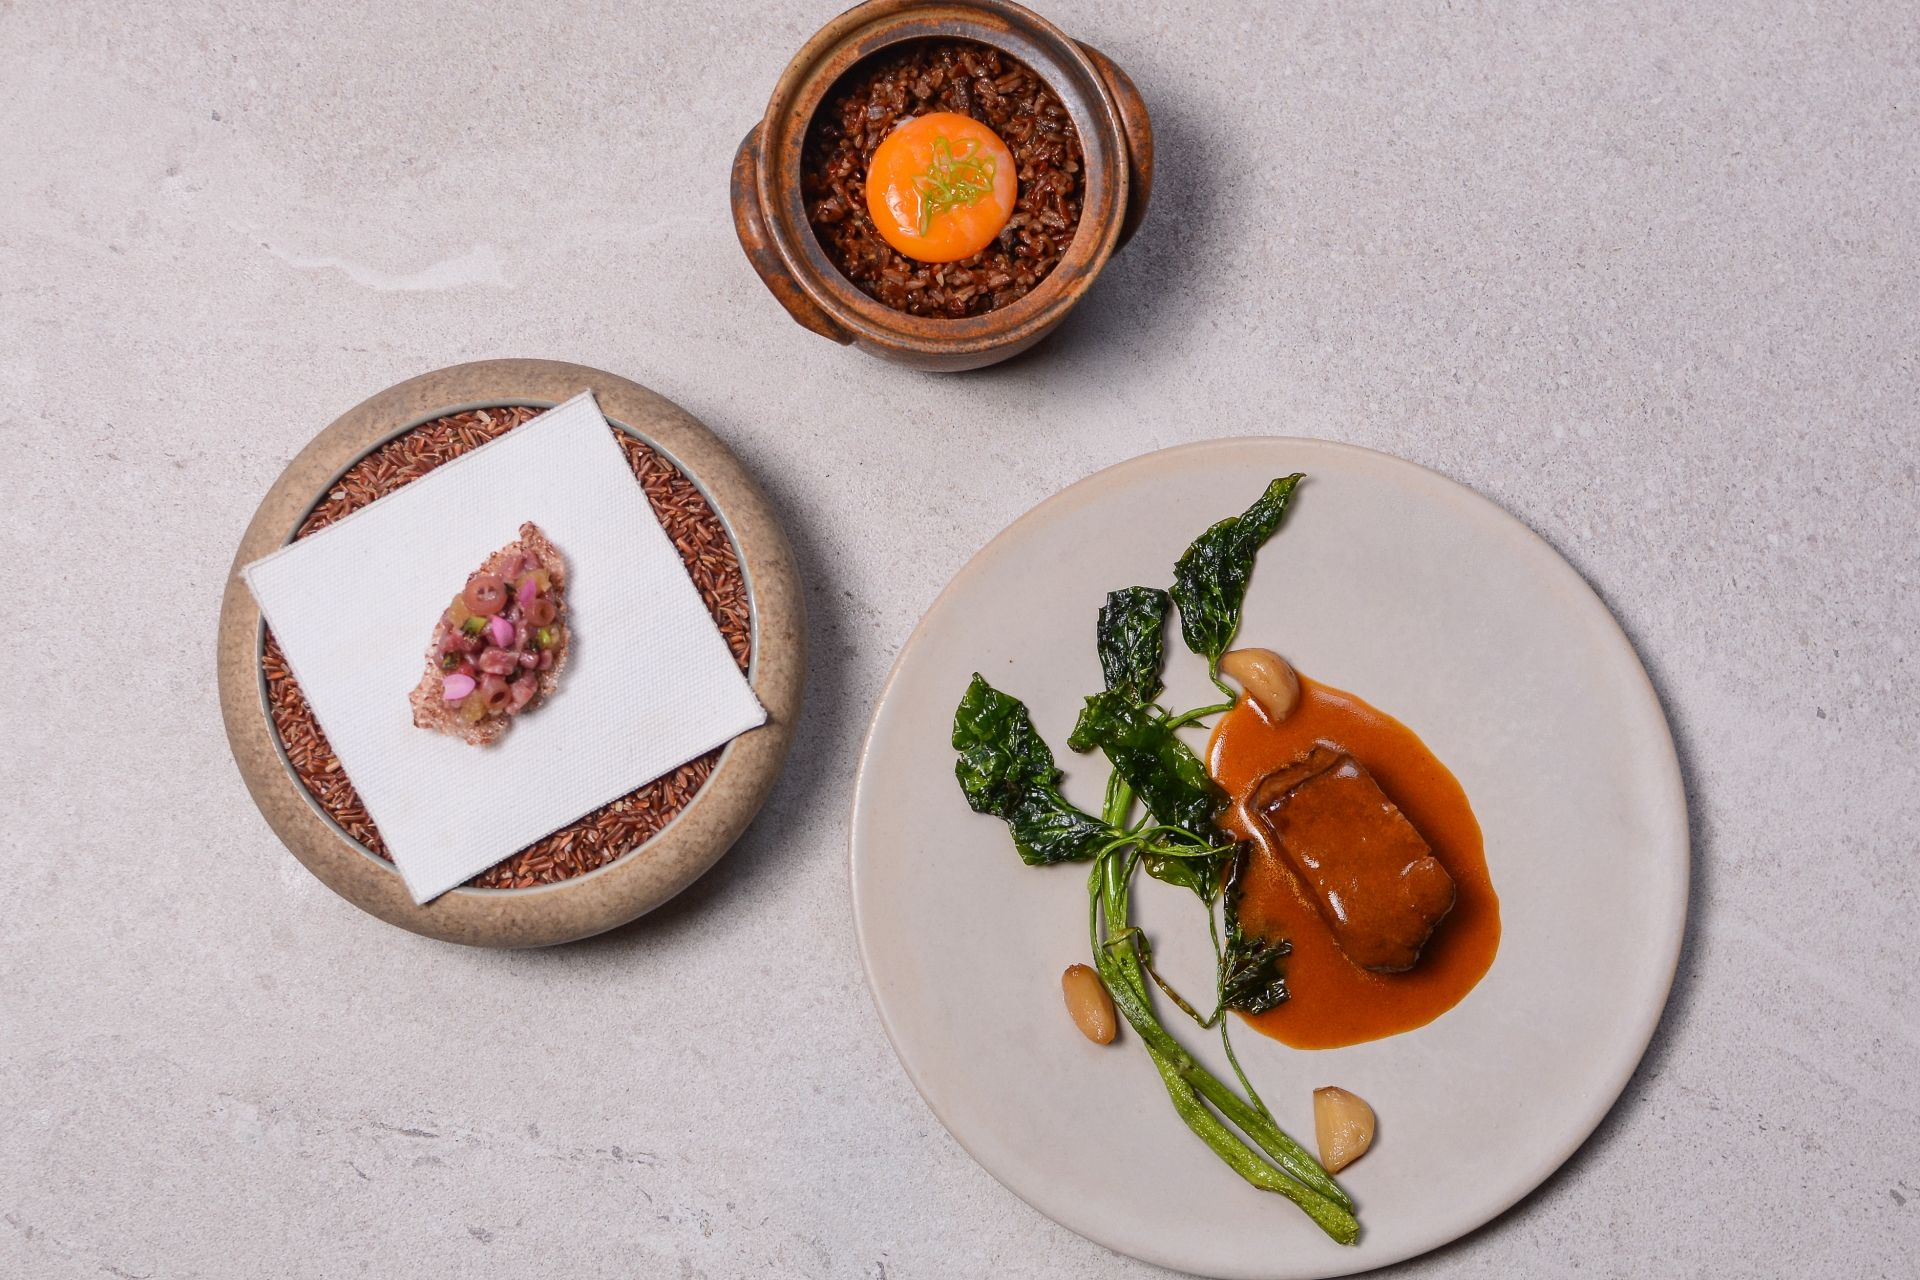 Asia's 50 Best Restaurant's New 51-100 List; Antonio's And Gallery By Chele Make The Cut